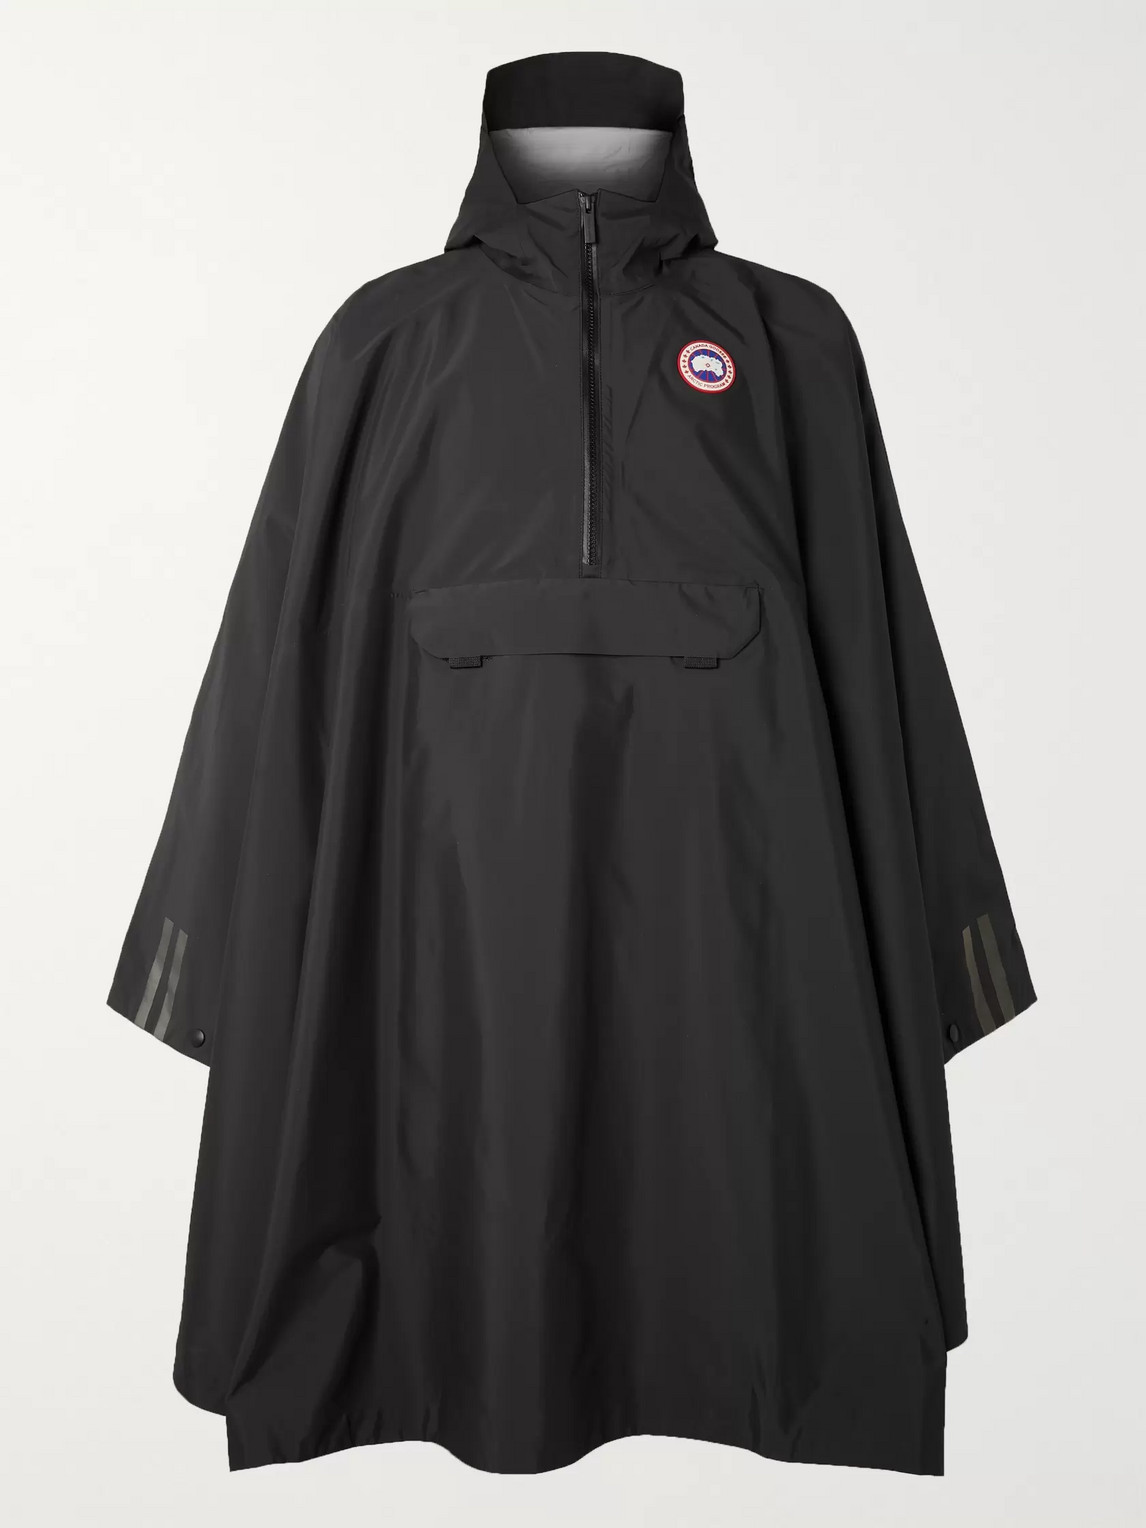 canada goose - field oversized tri-durance hooded poncho - men - black